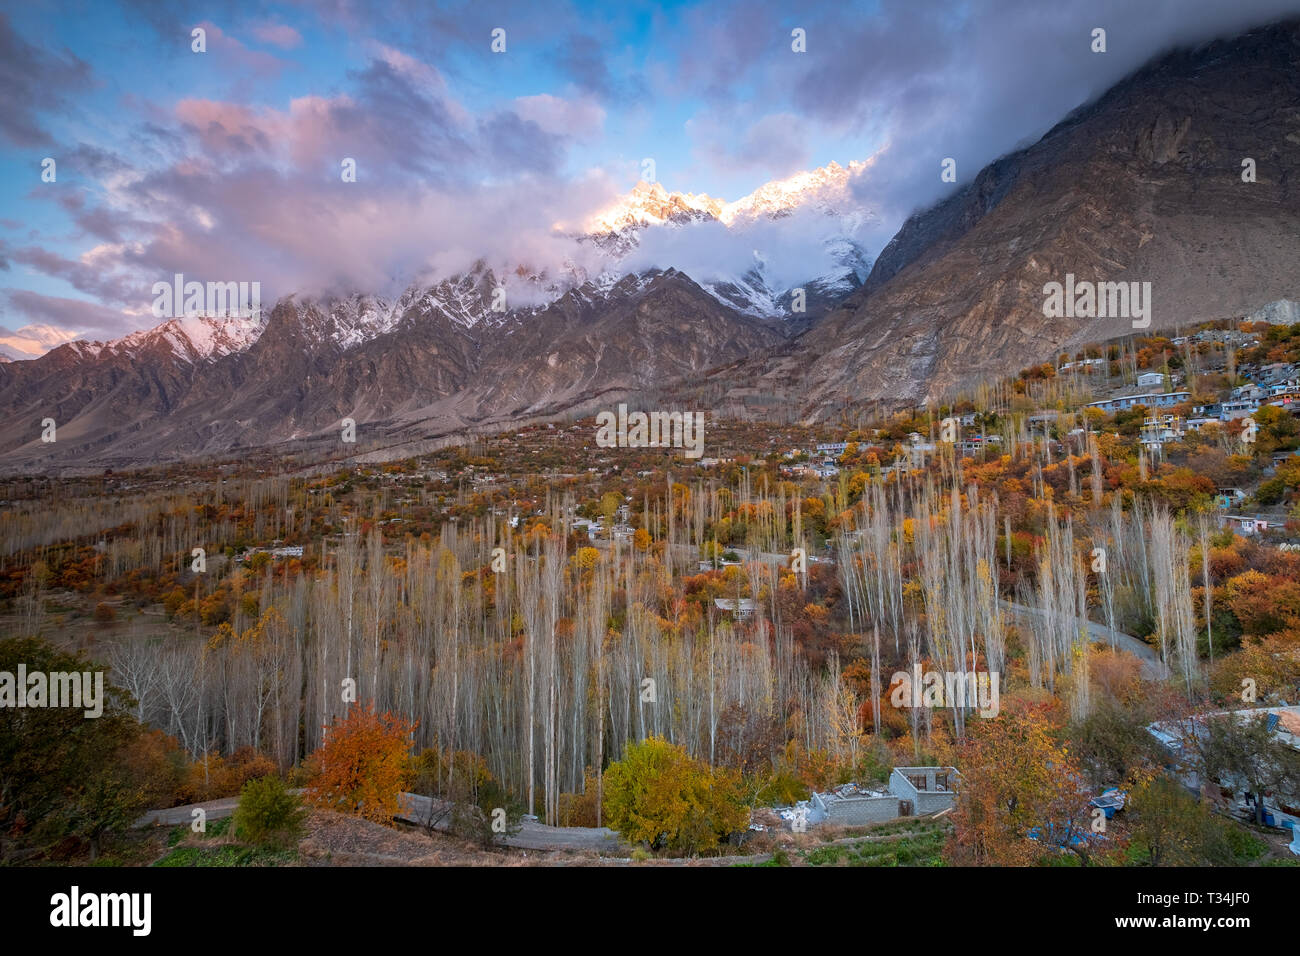 Alpine forest in autumn, Hunza, Gilgit-Baltistan, Pakistan - Stock Image